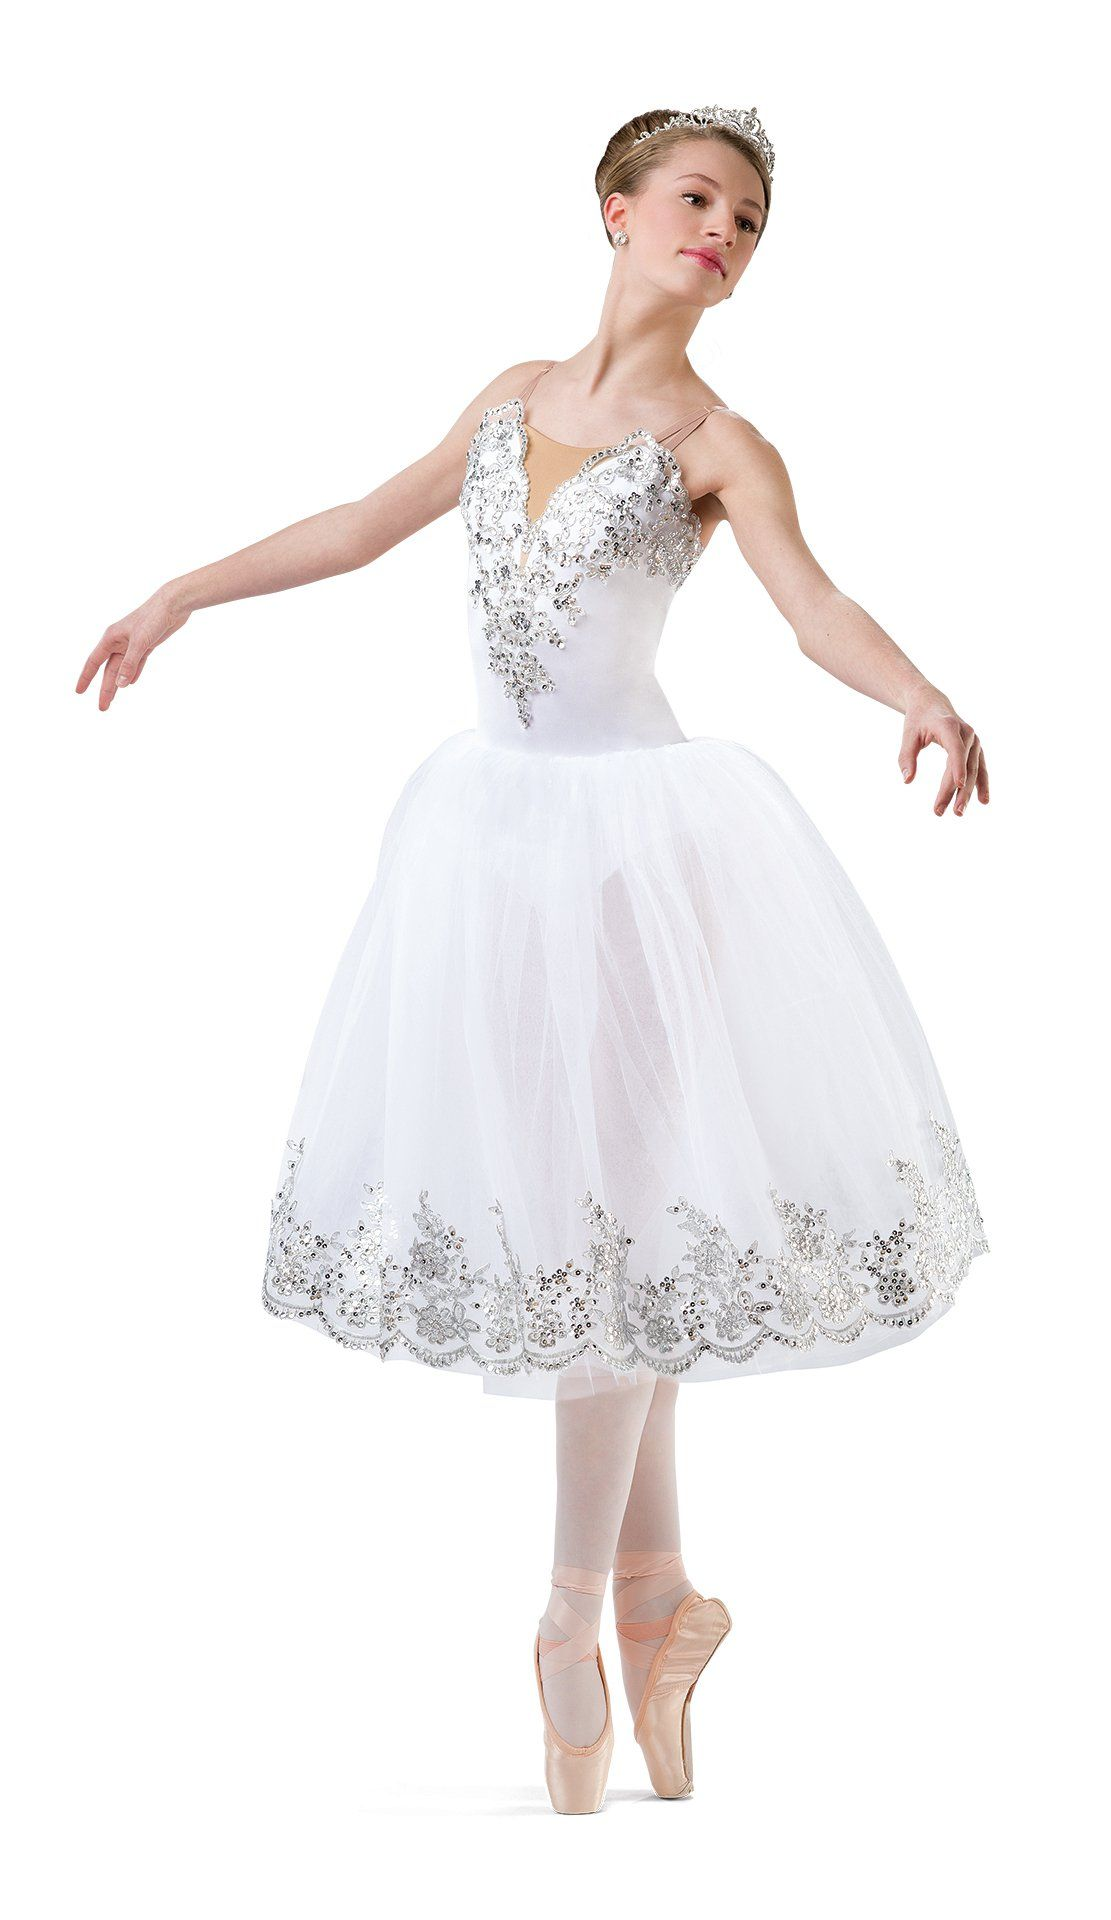 74851d6b01 Snowflakes - Costume Gallery | Mademoiselle Ballet Costume | Ballet ...